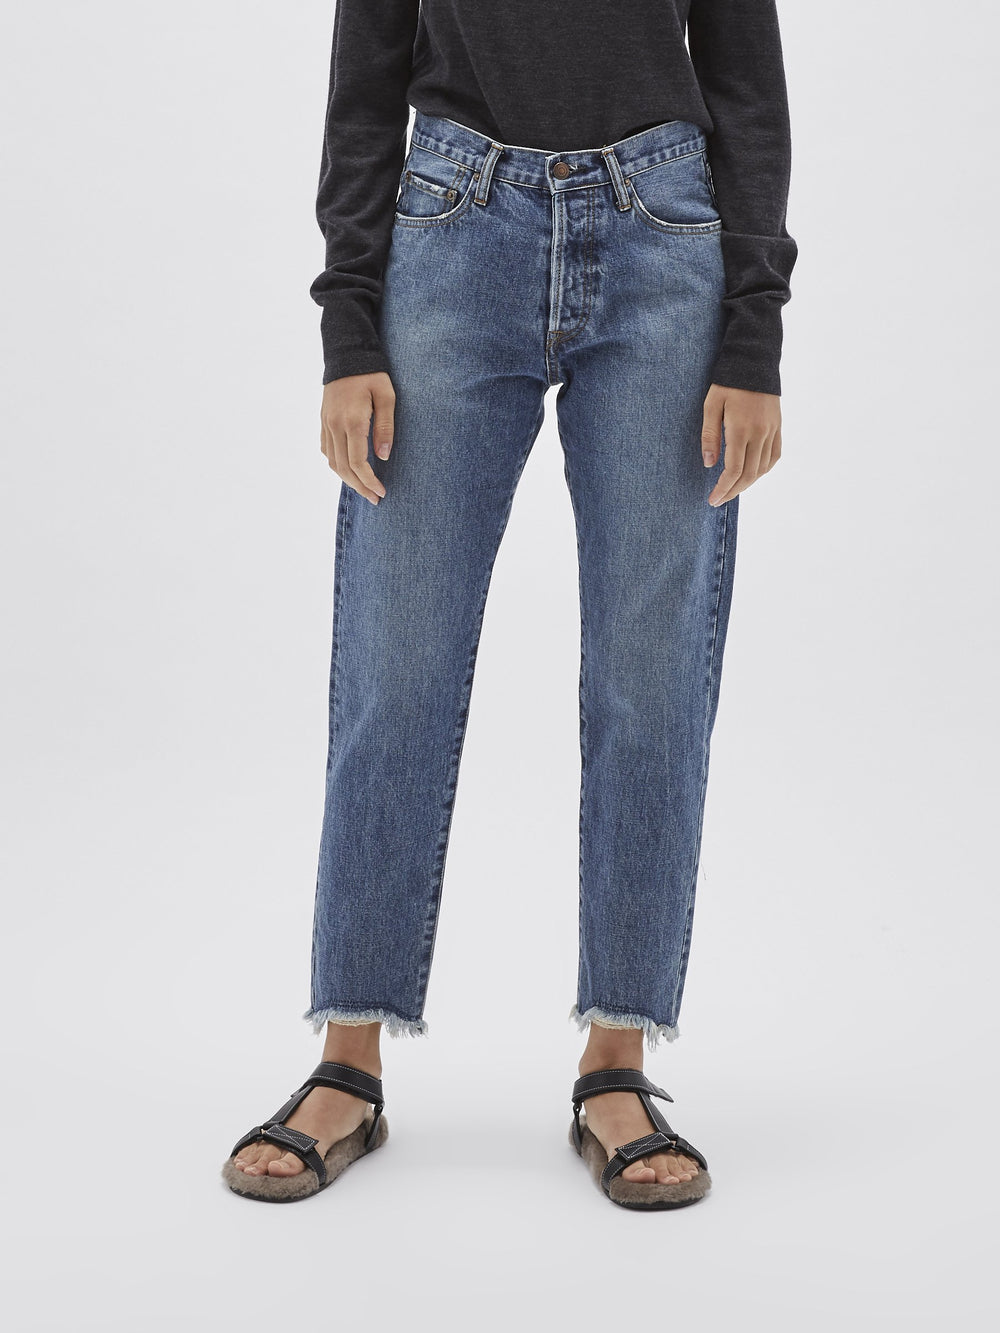 tapered frayed hem jean